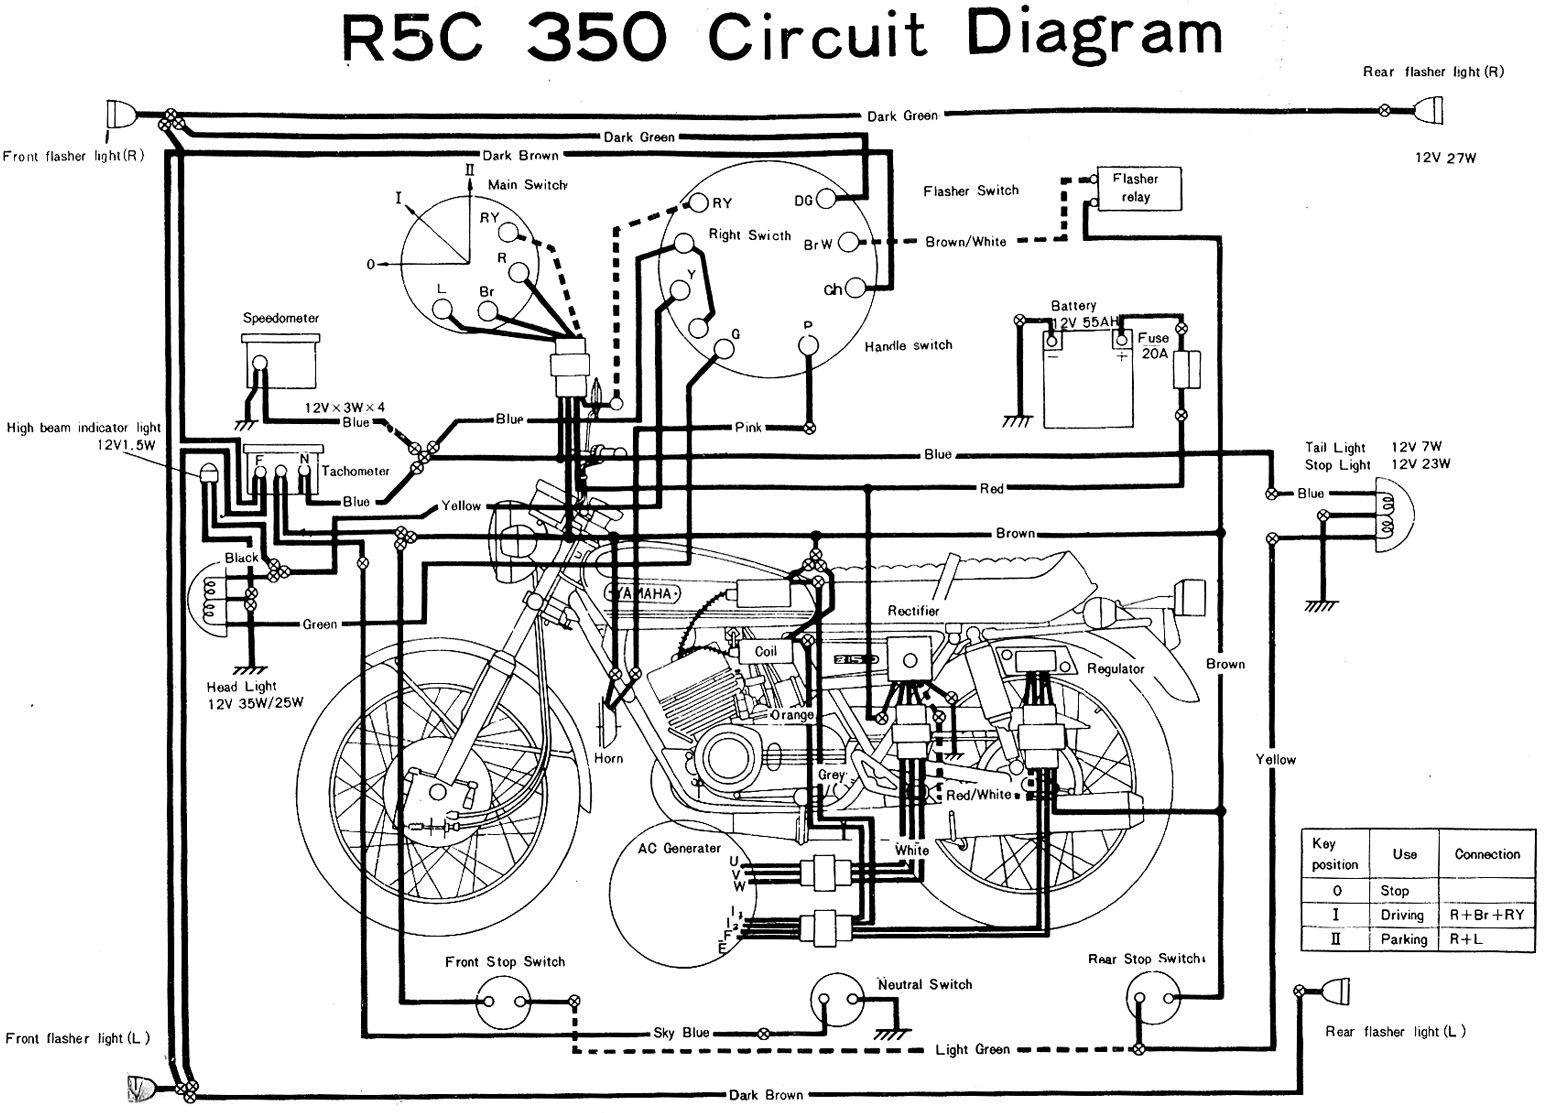 electronic flasher relay circuit diagram images power led driver electronic flasher relay circuit diagram images power led driver circuit diagram latest image for car engine scheme 14 pole relay wiring diagram